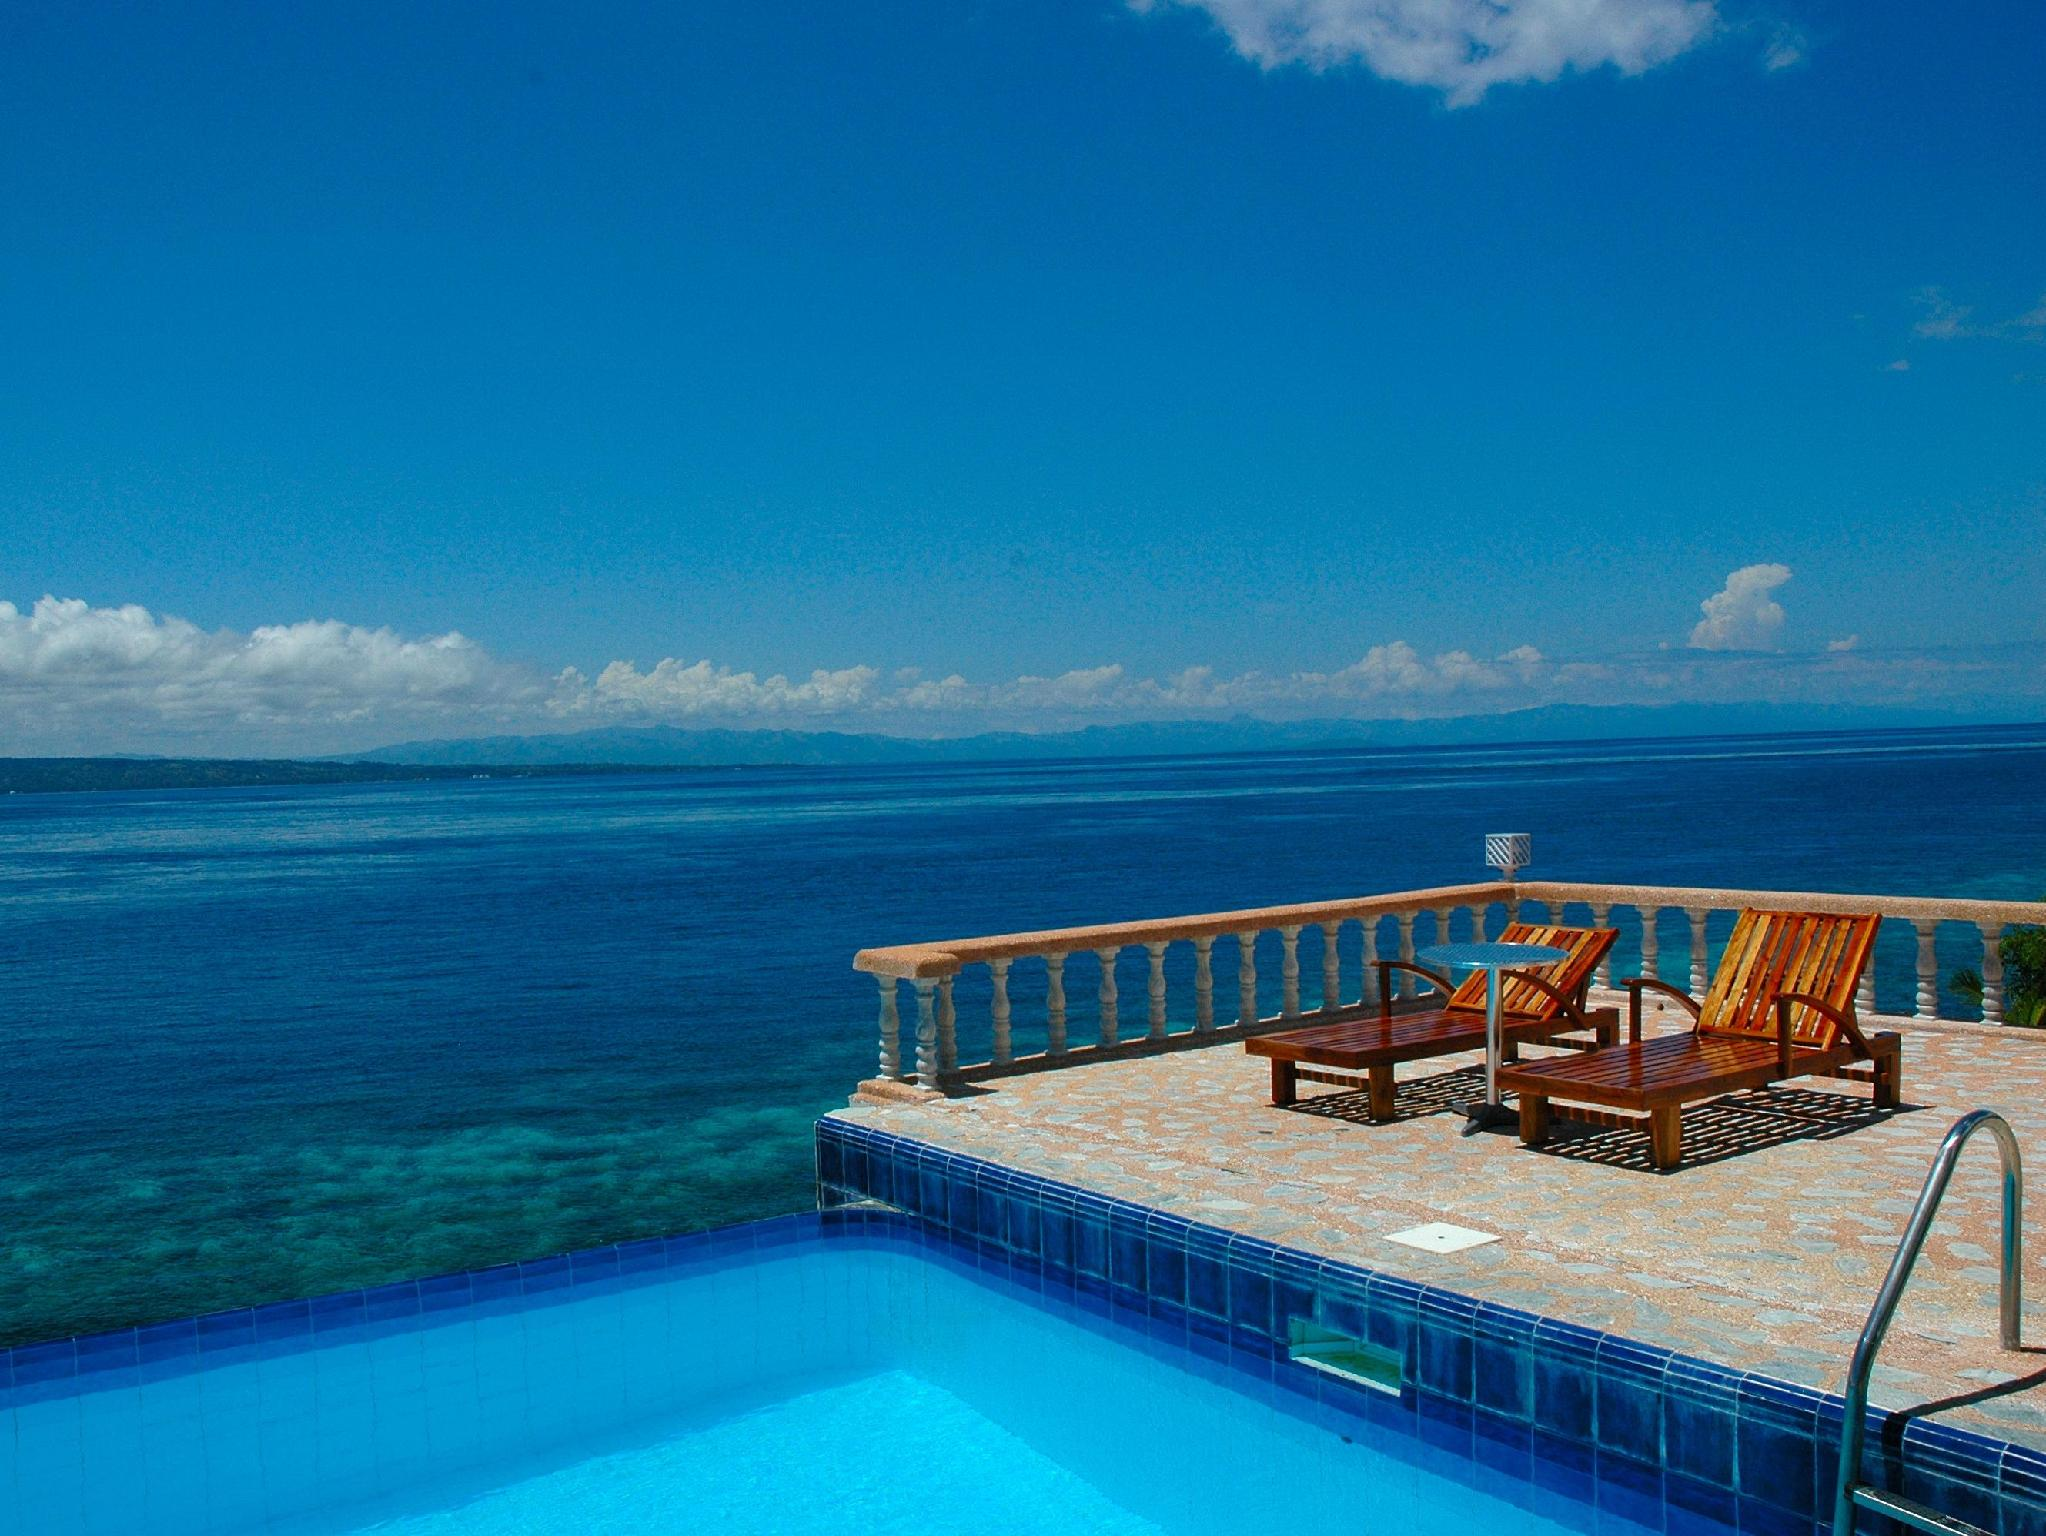 Eden Resort Cebu - Uszoda